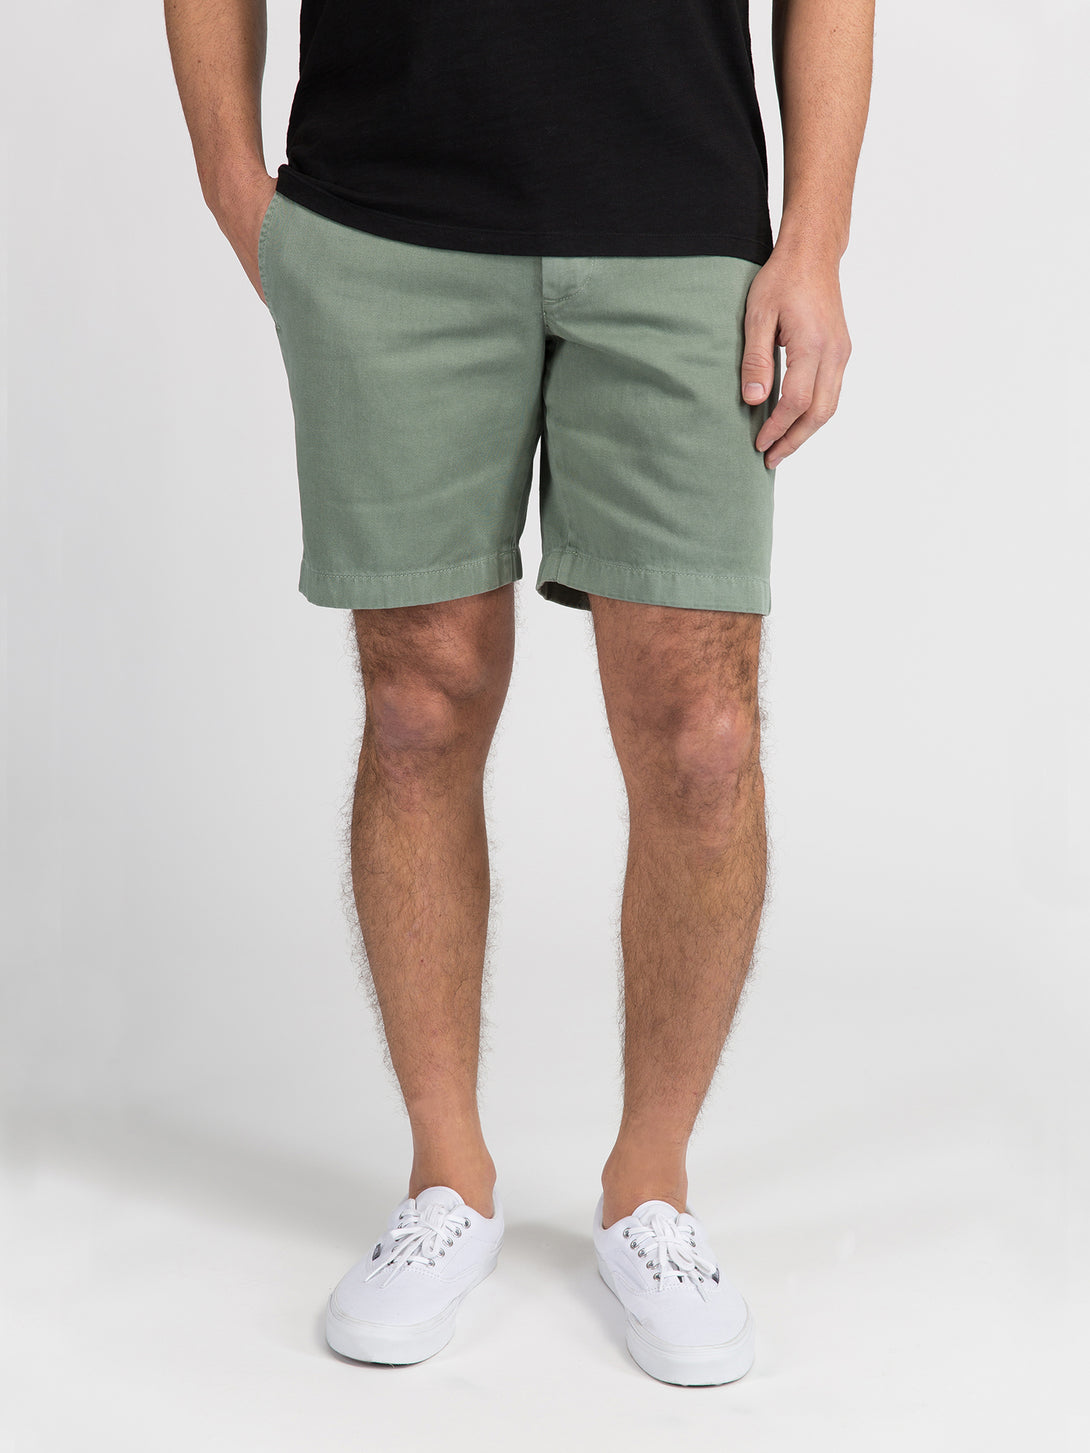 ons garage men's shorts MINT